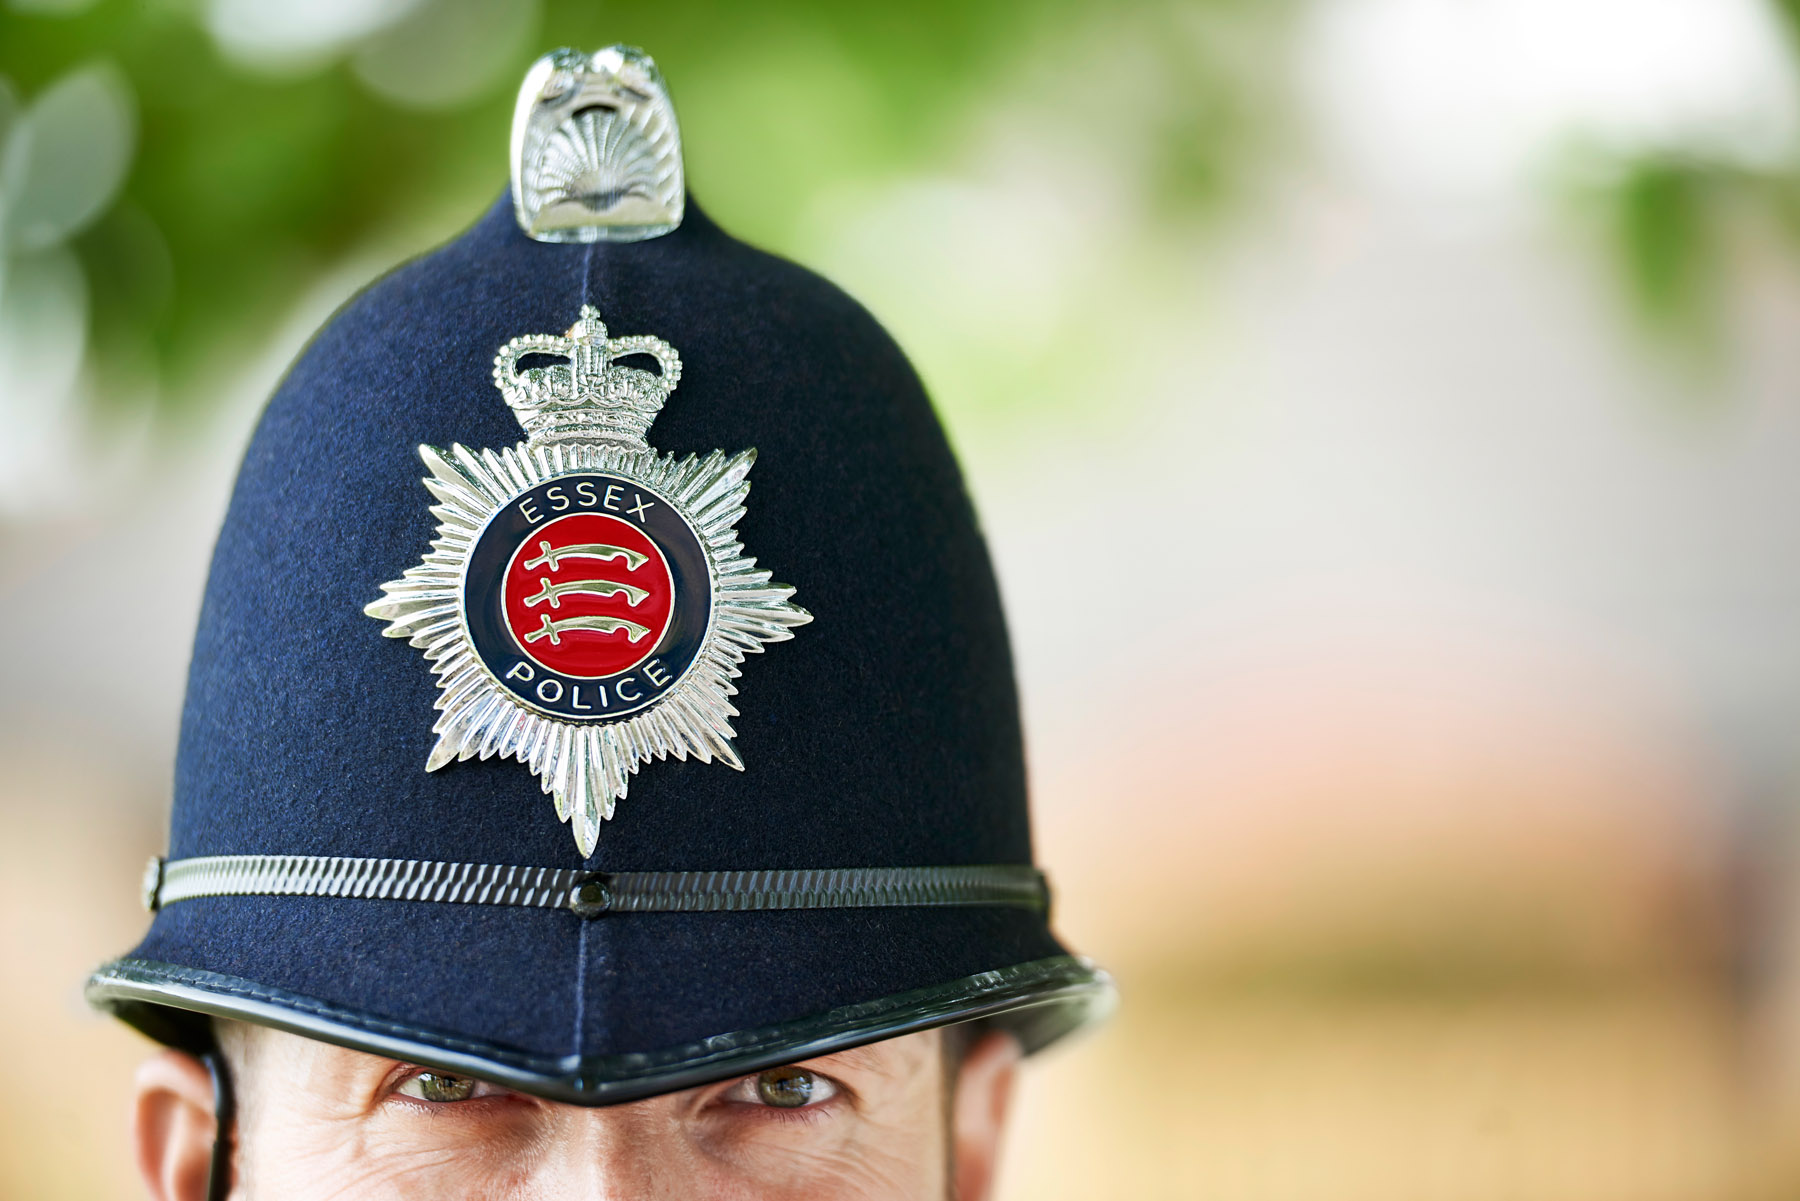 Close up of an Essex Police officer